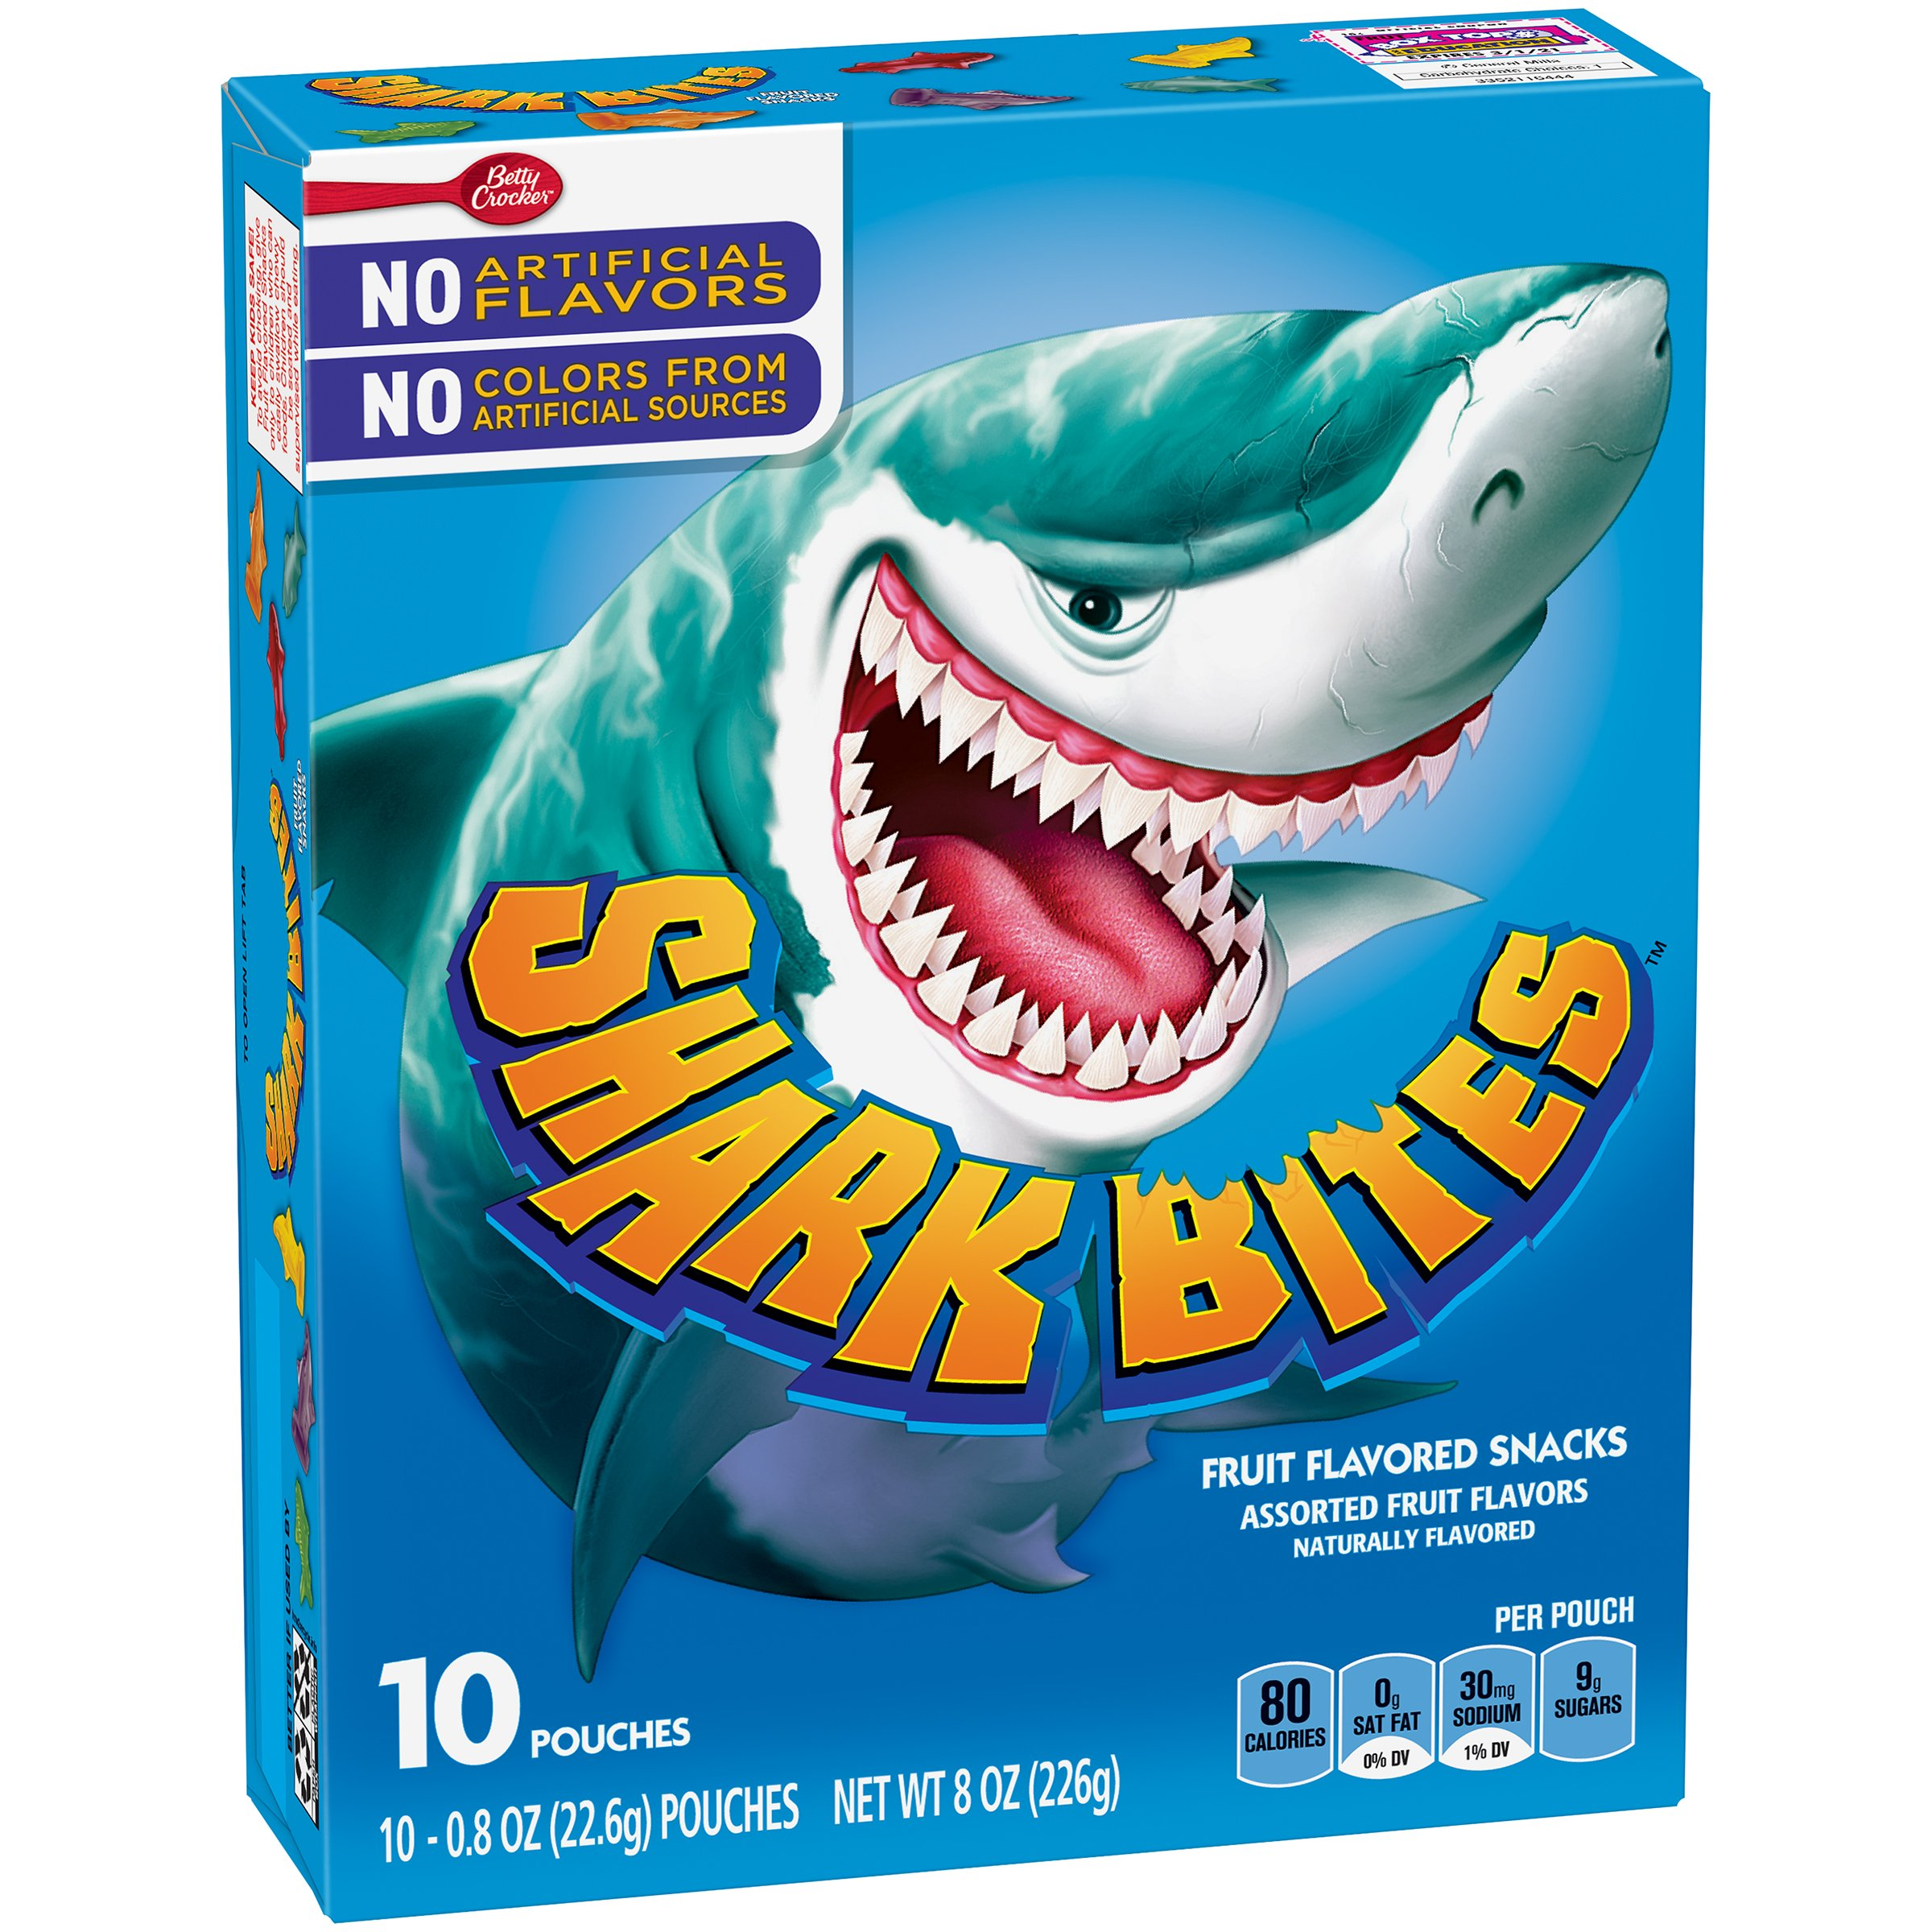 Betty Crocker Fruit Snacks Shark Bites, Assorted Flavors, 10 Count (Pack of 8) by Betty Crocker Fruit Snacks (Image #1)